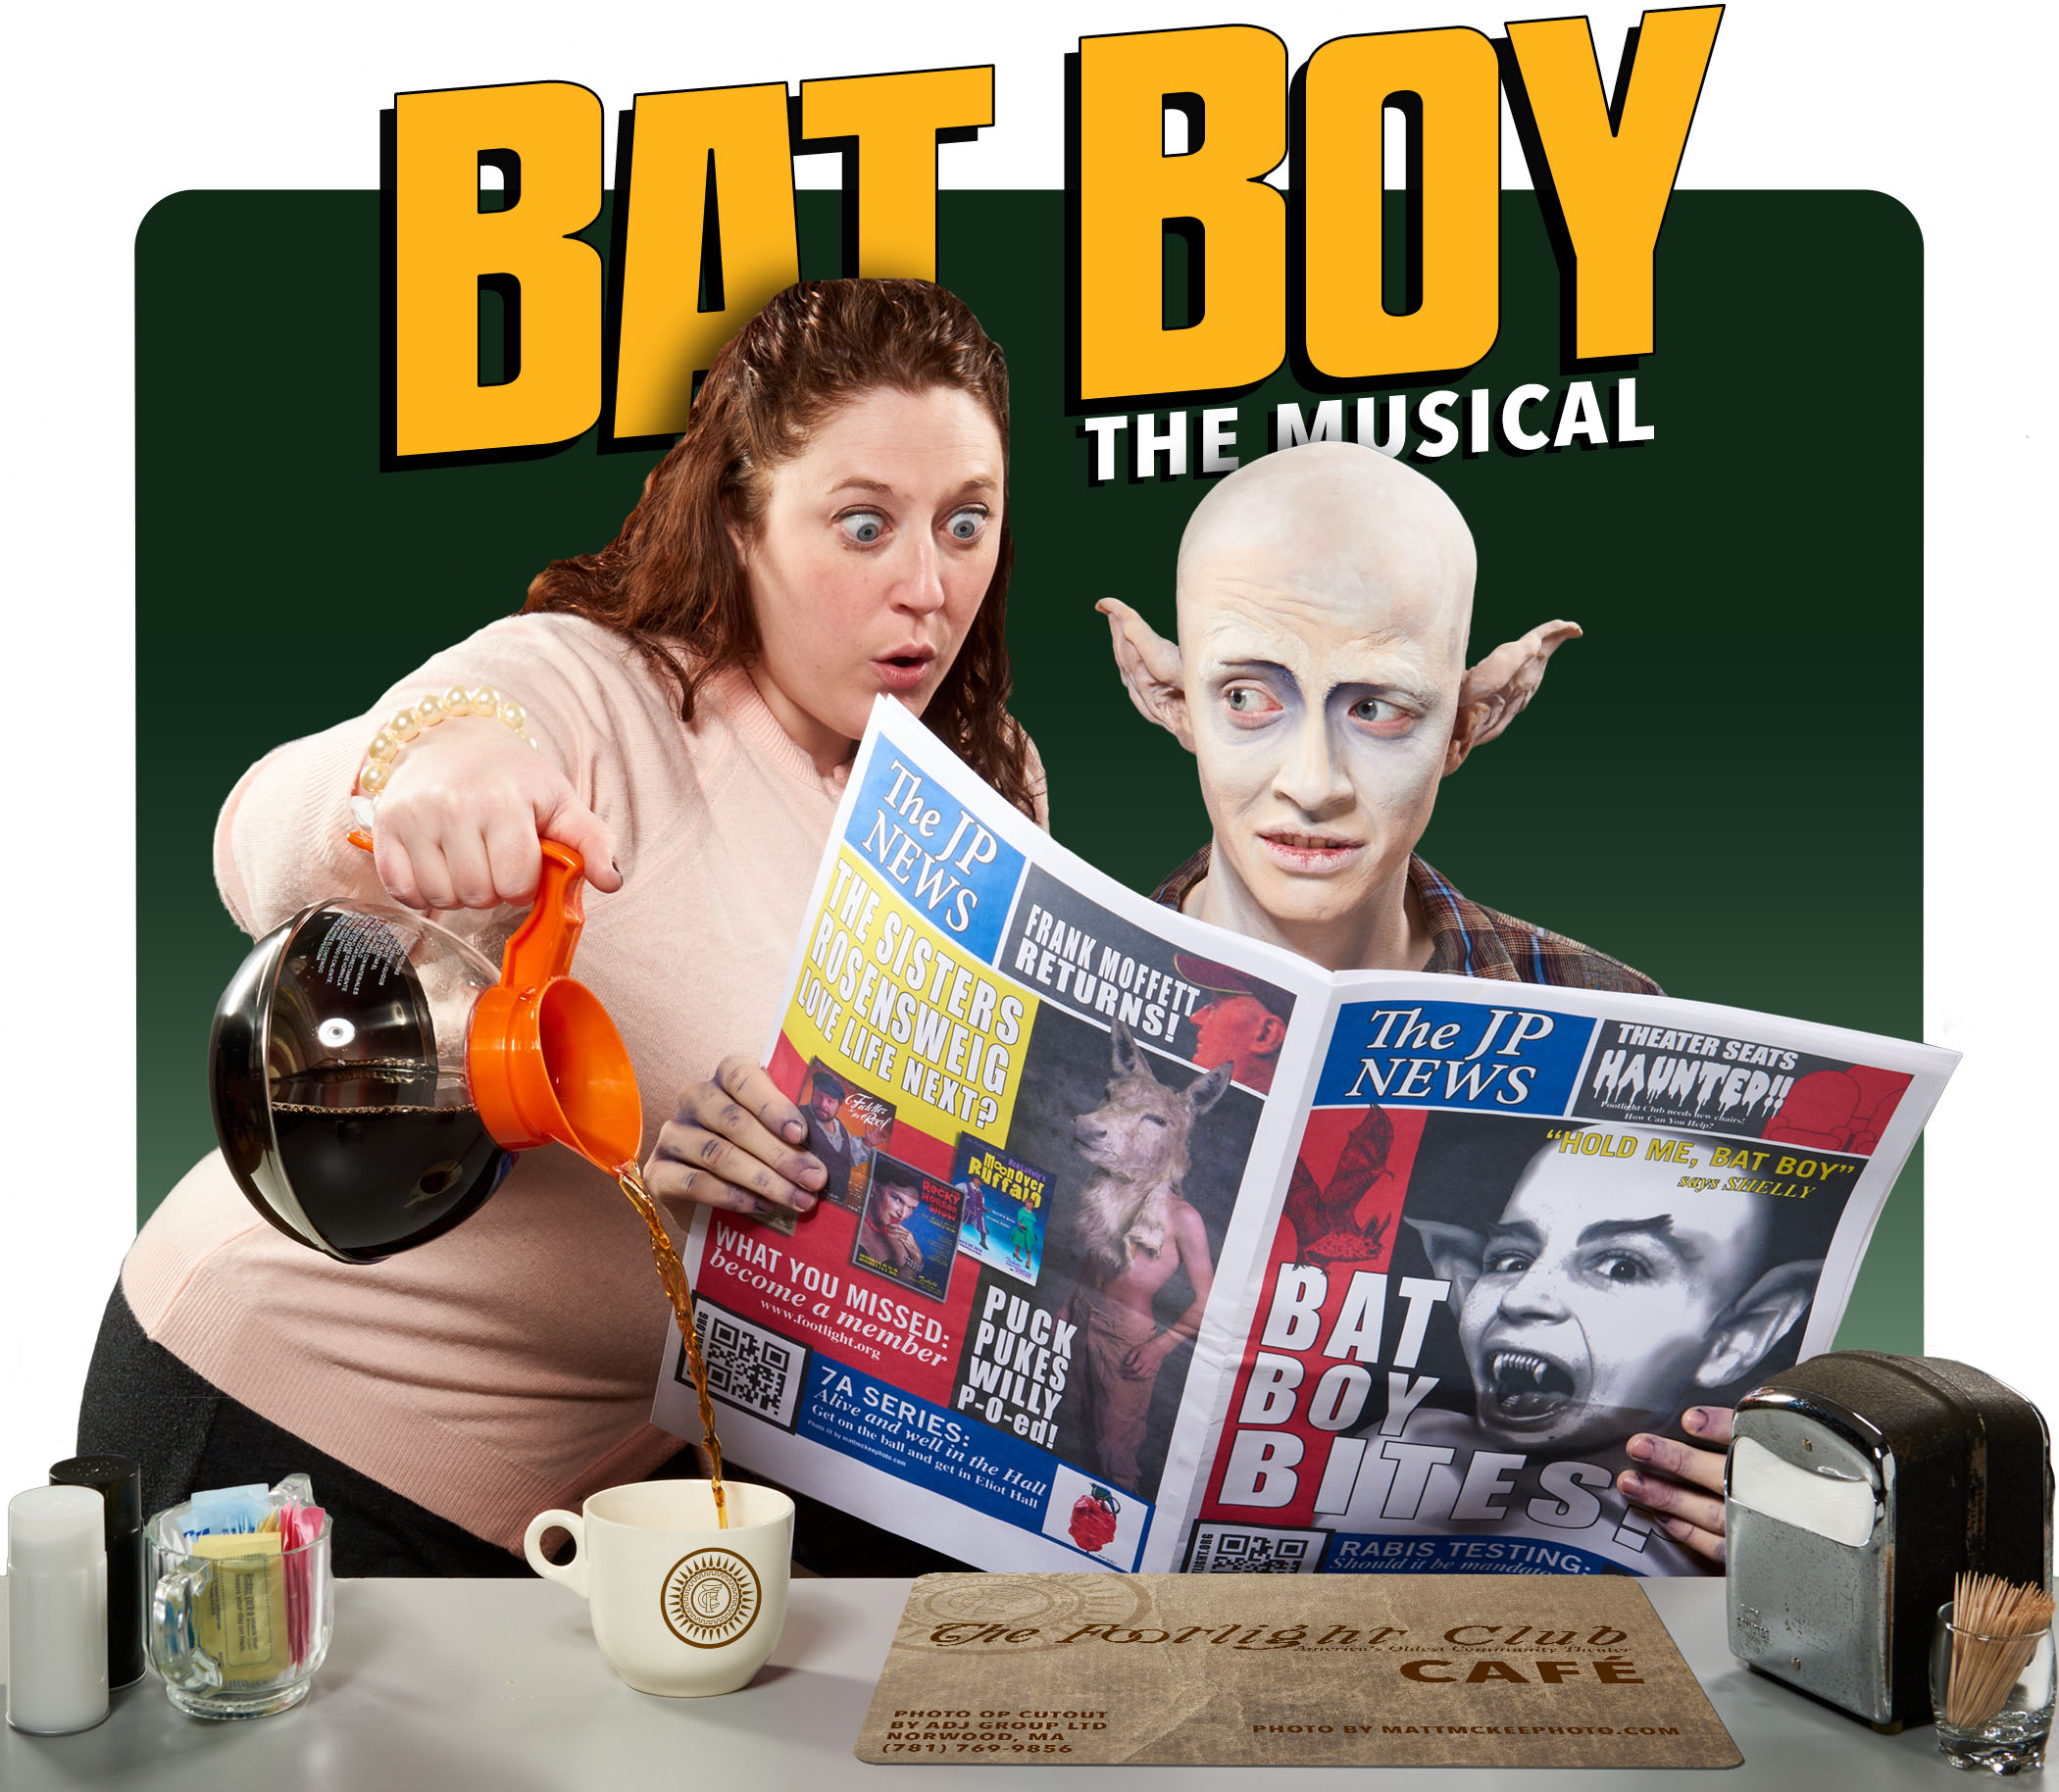 Bat Boy The Musical – Behind the Scenes on the Poster Shoot